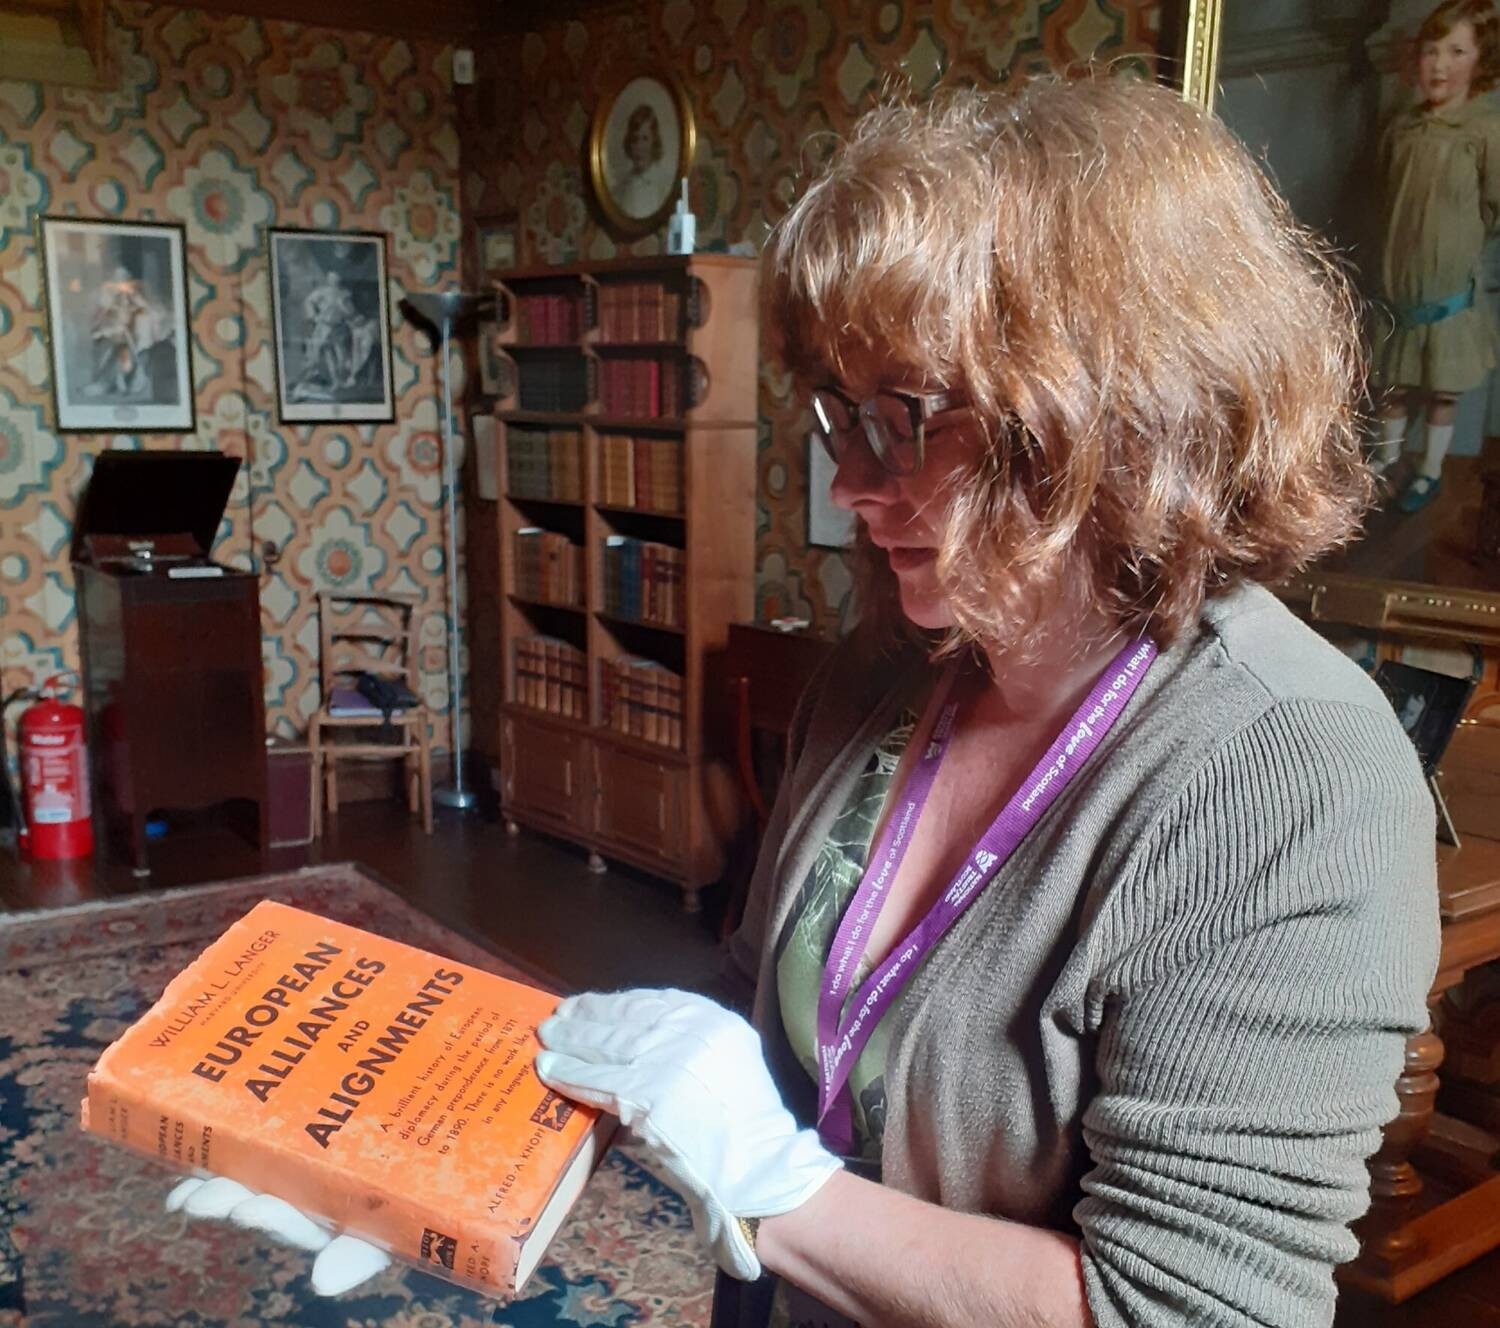 A close-up of a woman with white conservation gloves holding a hardback book with an orange cover.